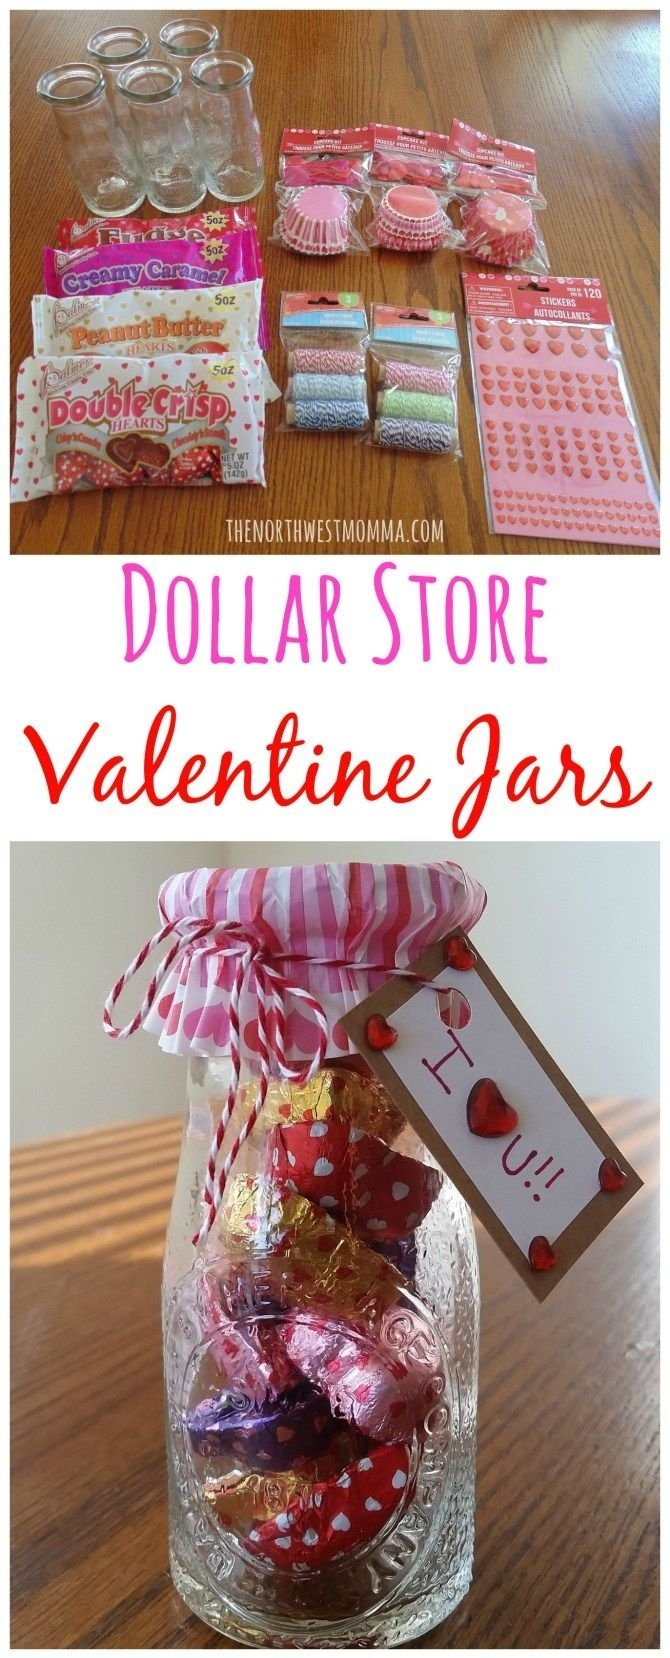 10 Wonderful Valentines Day Ideas For Teenage Couples 556 best gift ideas images on pinterest gift ideas creative gifts 2021